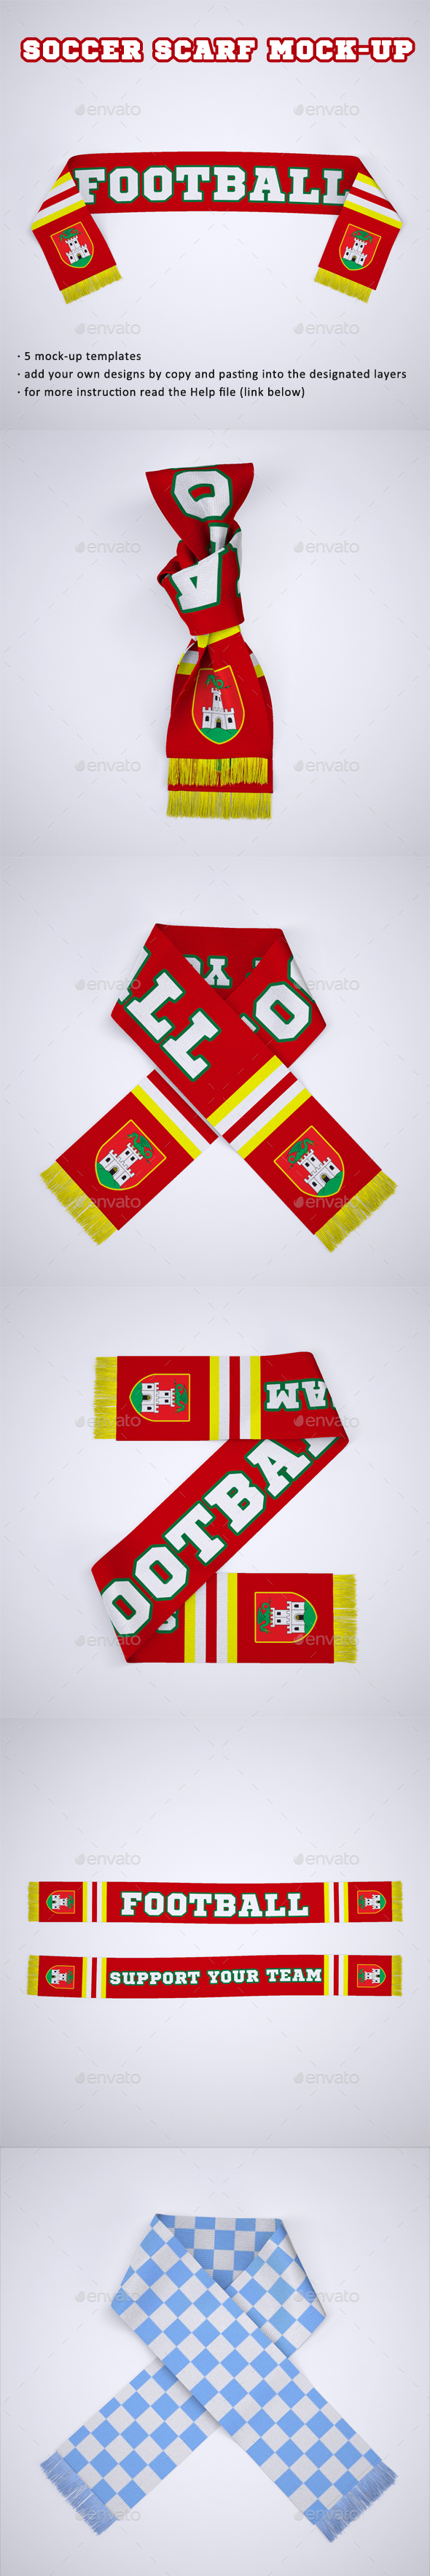 Soccer, Football Fan Scarf Mock-Up - Product Mock-Ups Graphics